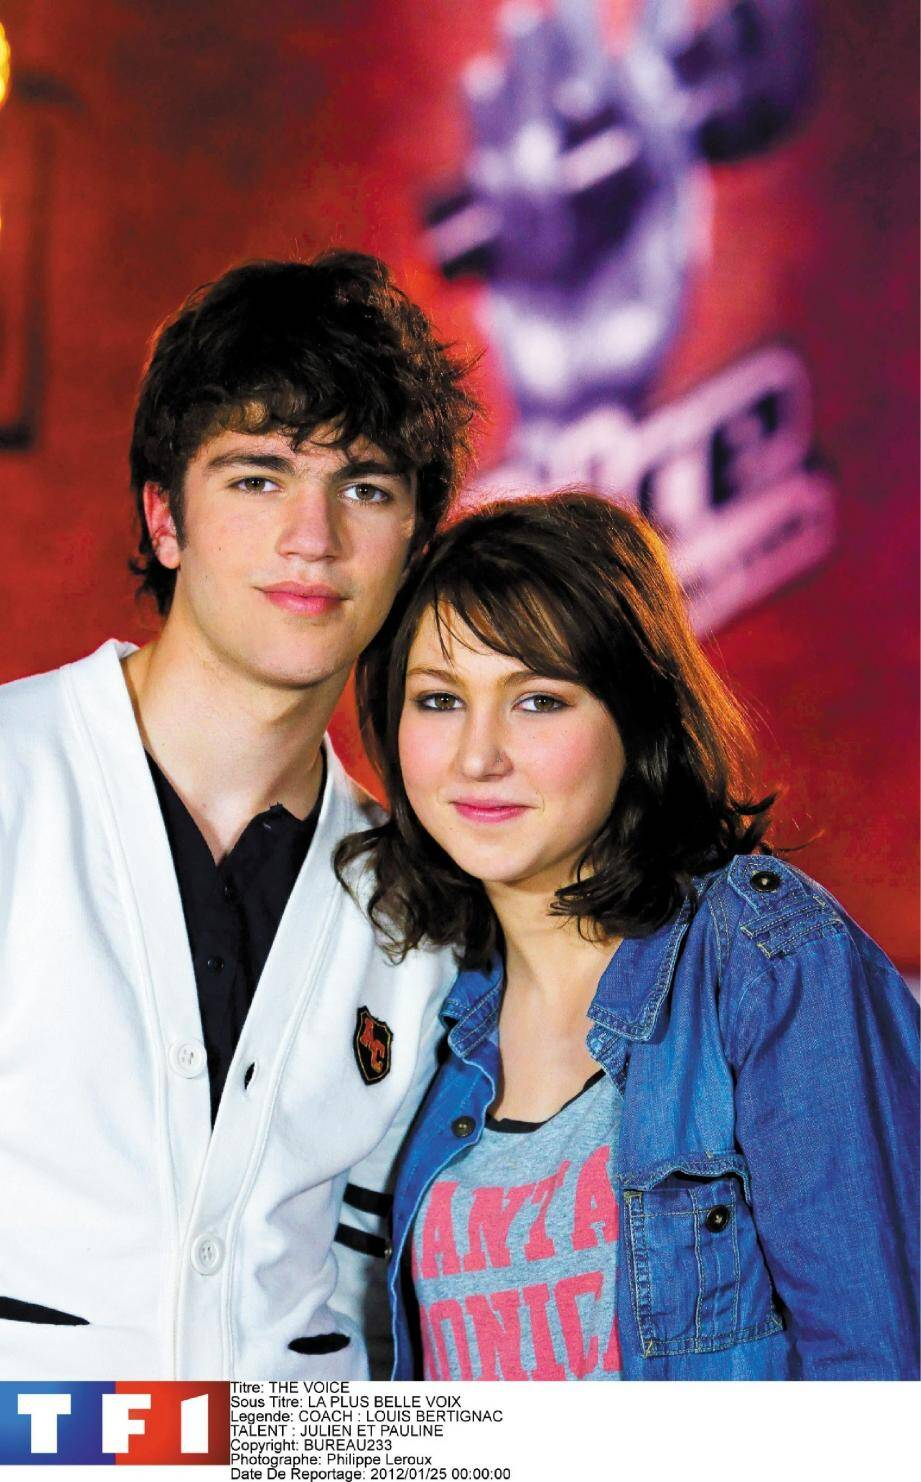 Julien, 16 ans, et Pauline, 17 ans, benjamins et seul duo de l'émission The Voice .